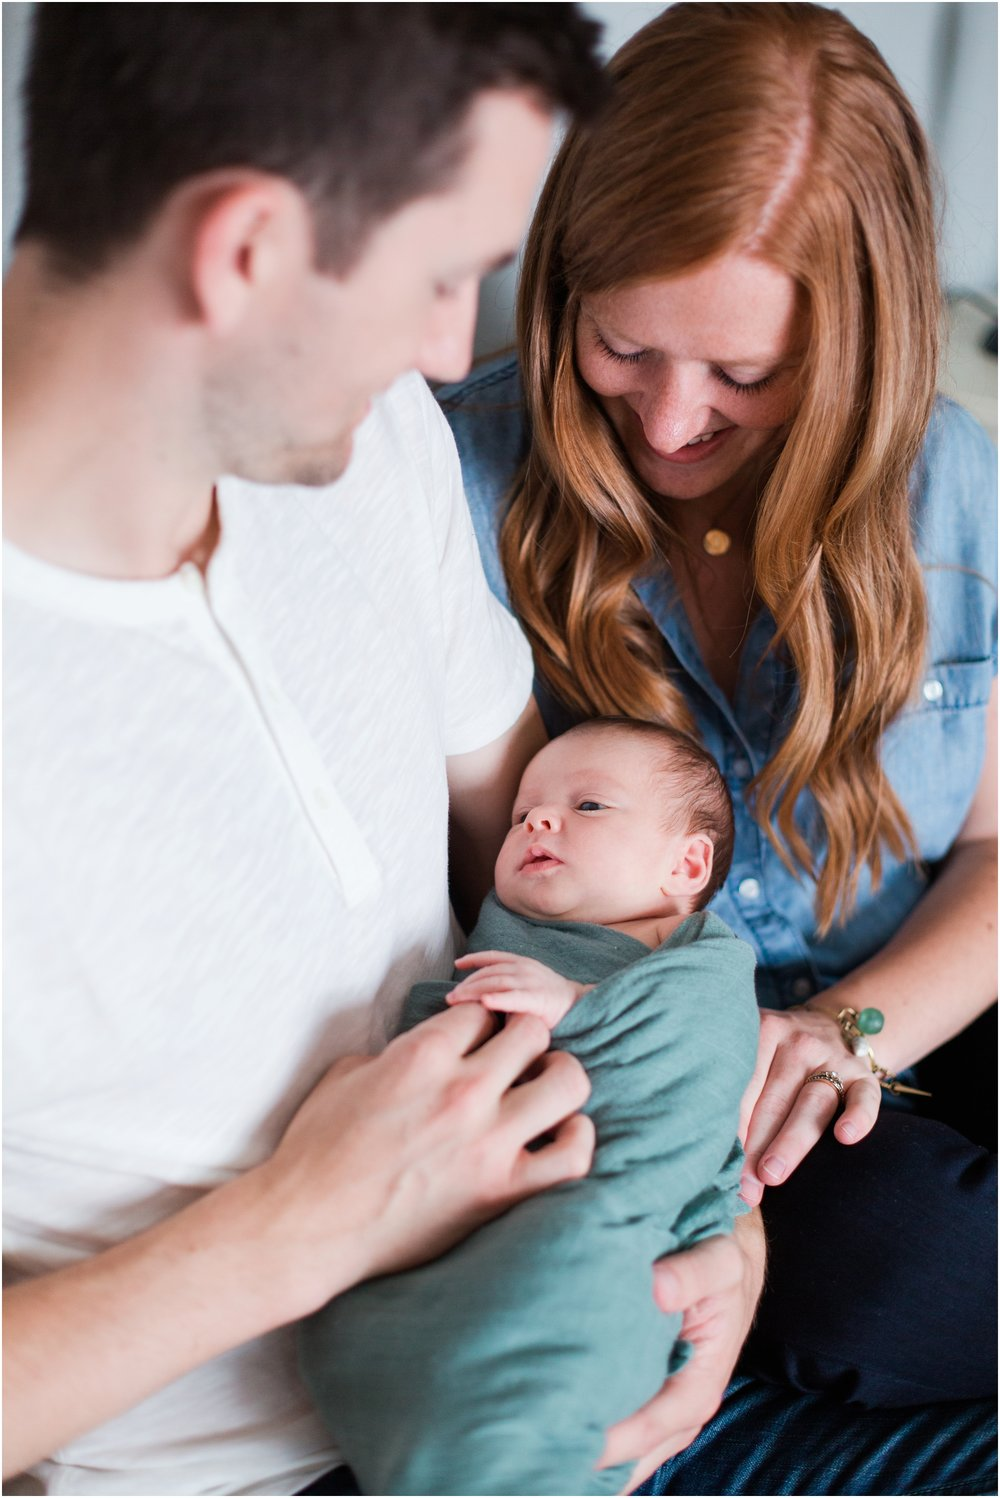 Seattle lifestyle newborn photos by Briana Calderon Photography based in the Greater Seattle & Tacoma, WA_0706.jpg